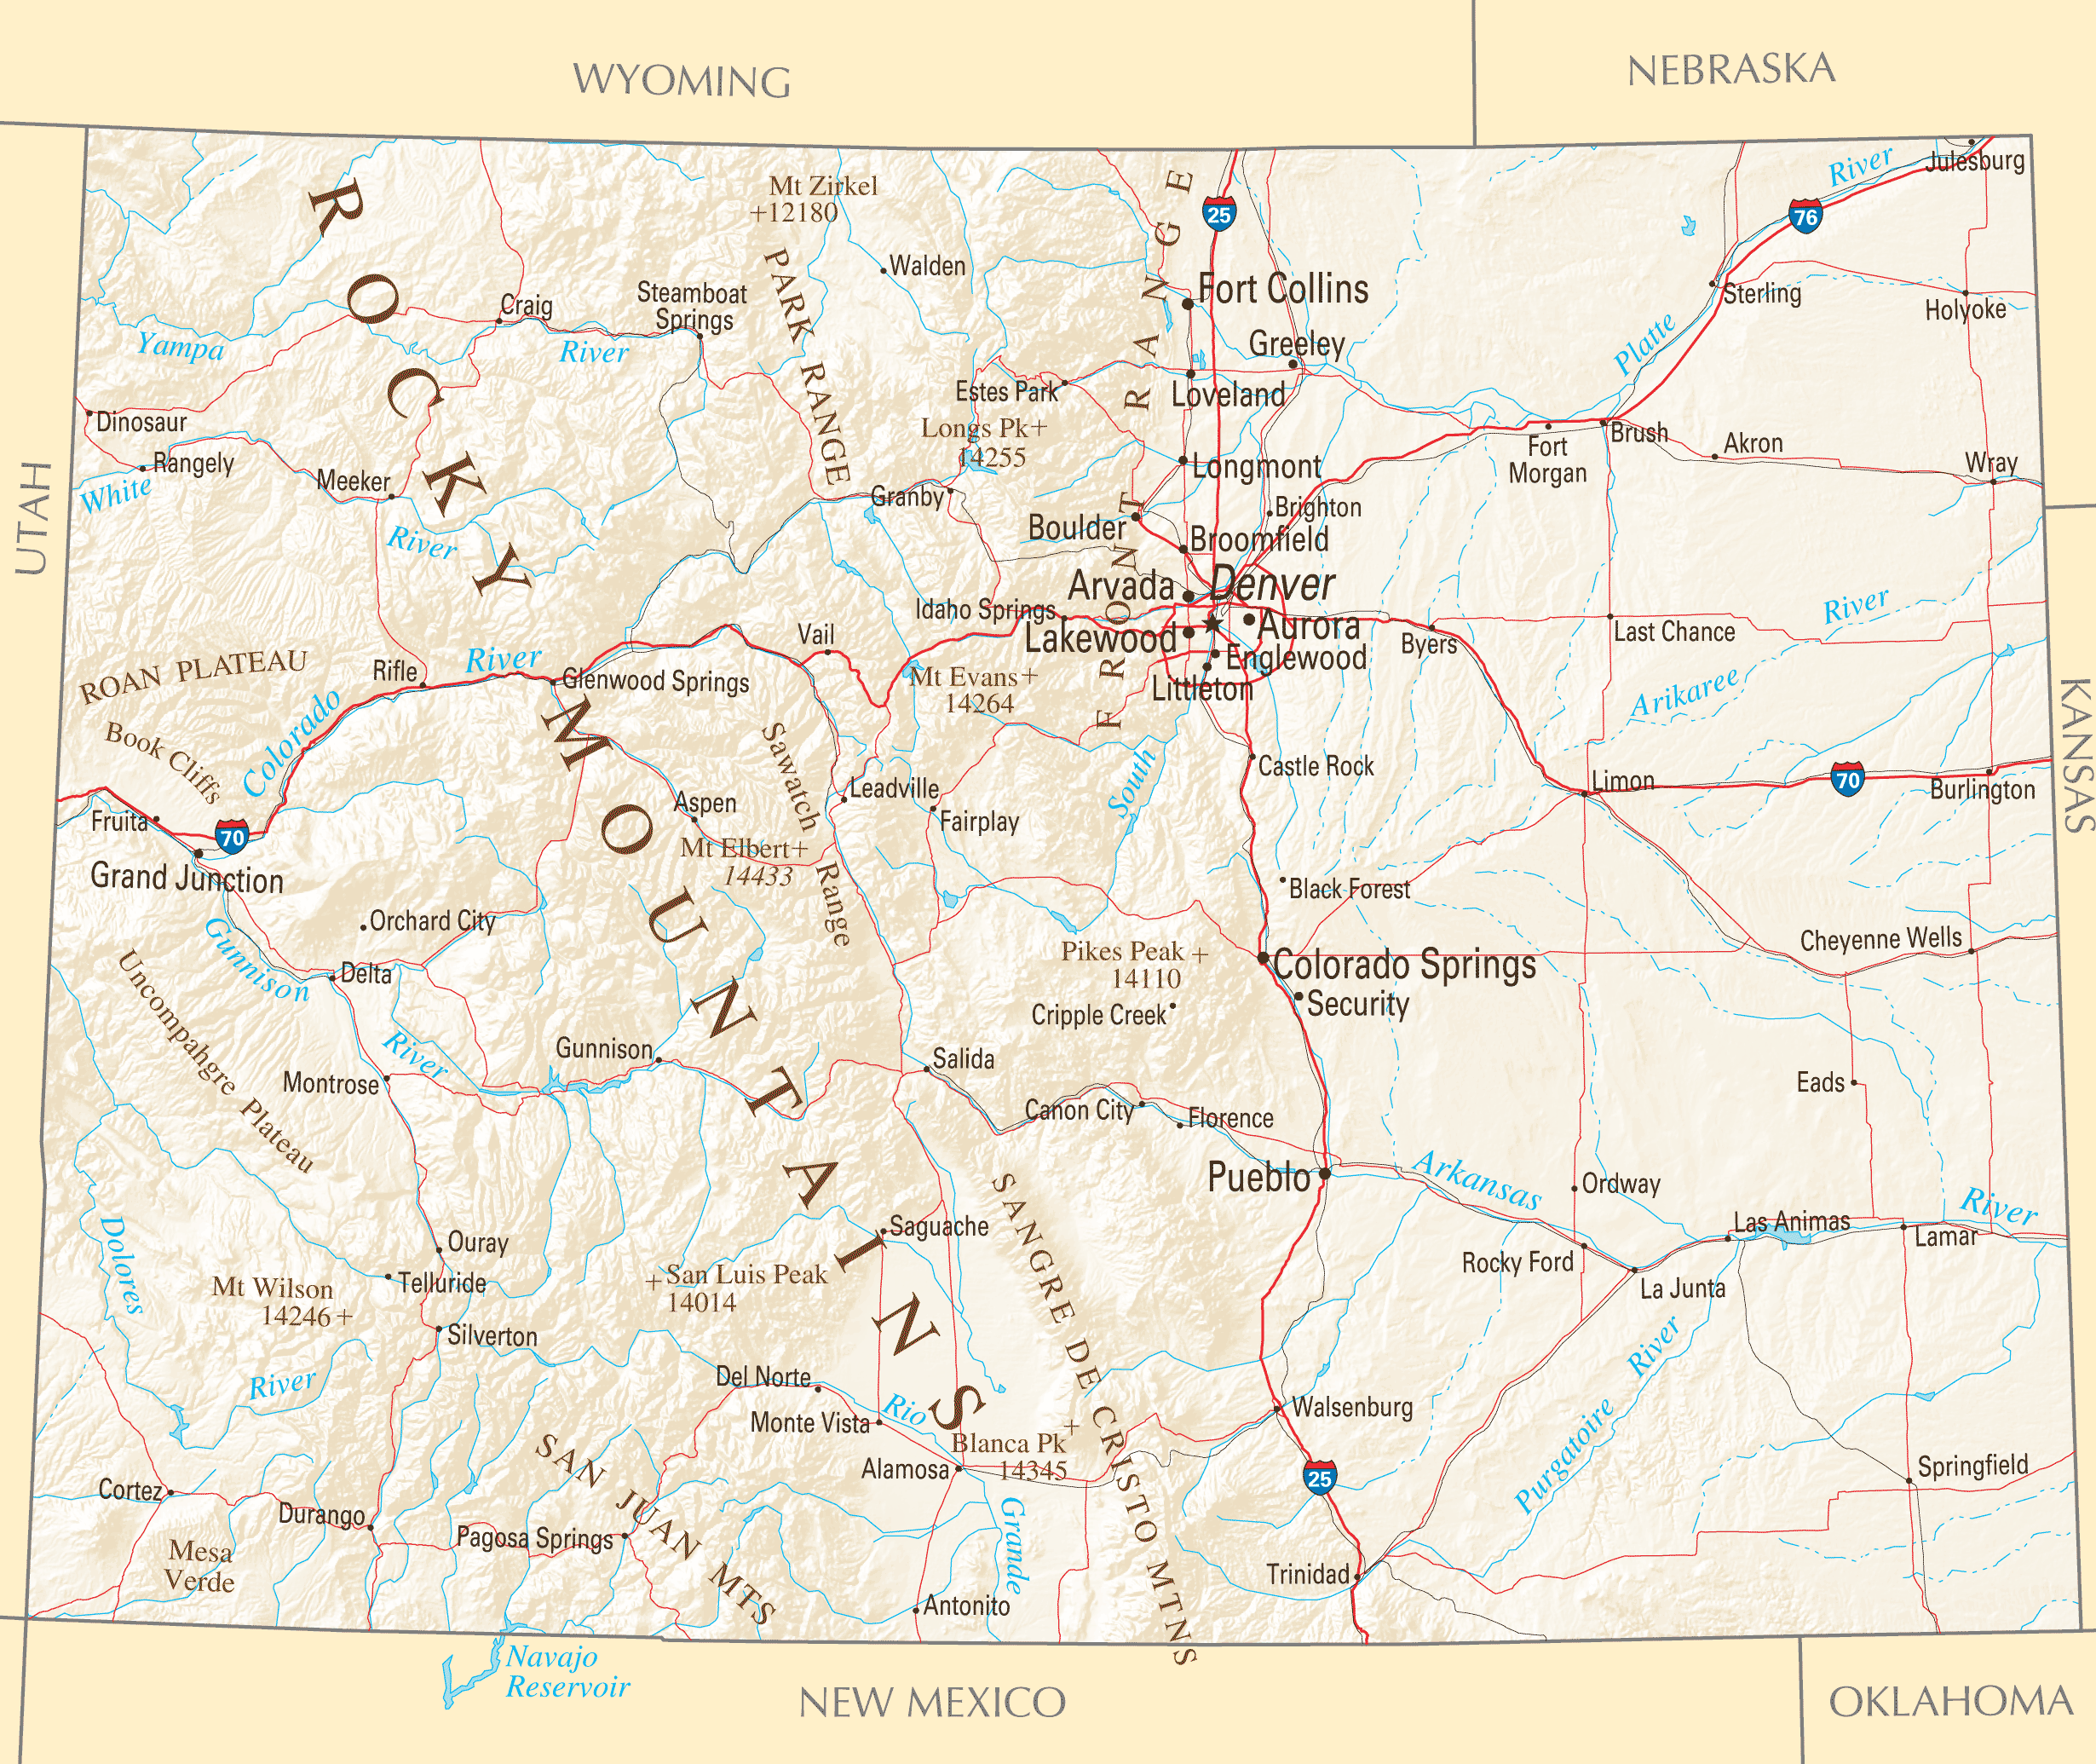 Colorado Reference Map Mapsofnet - Coloradomap